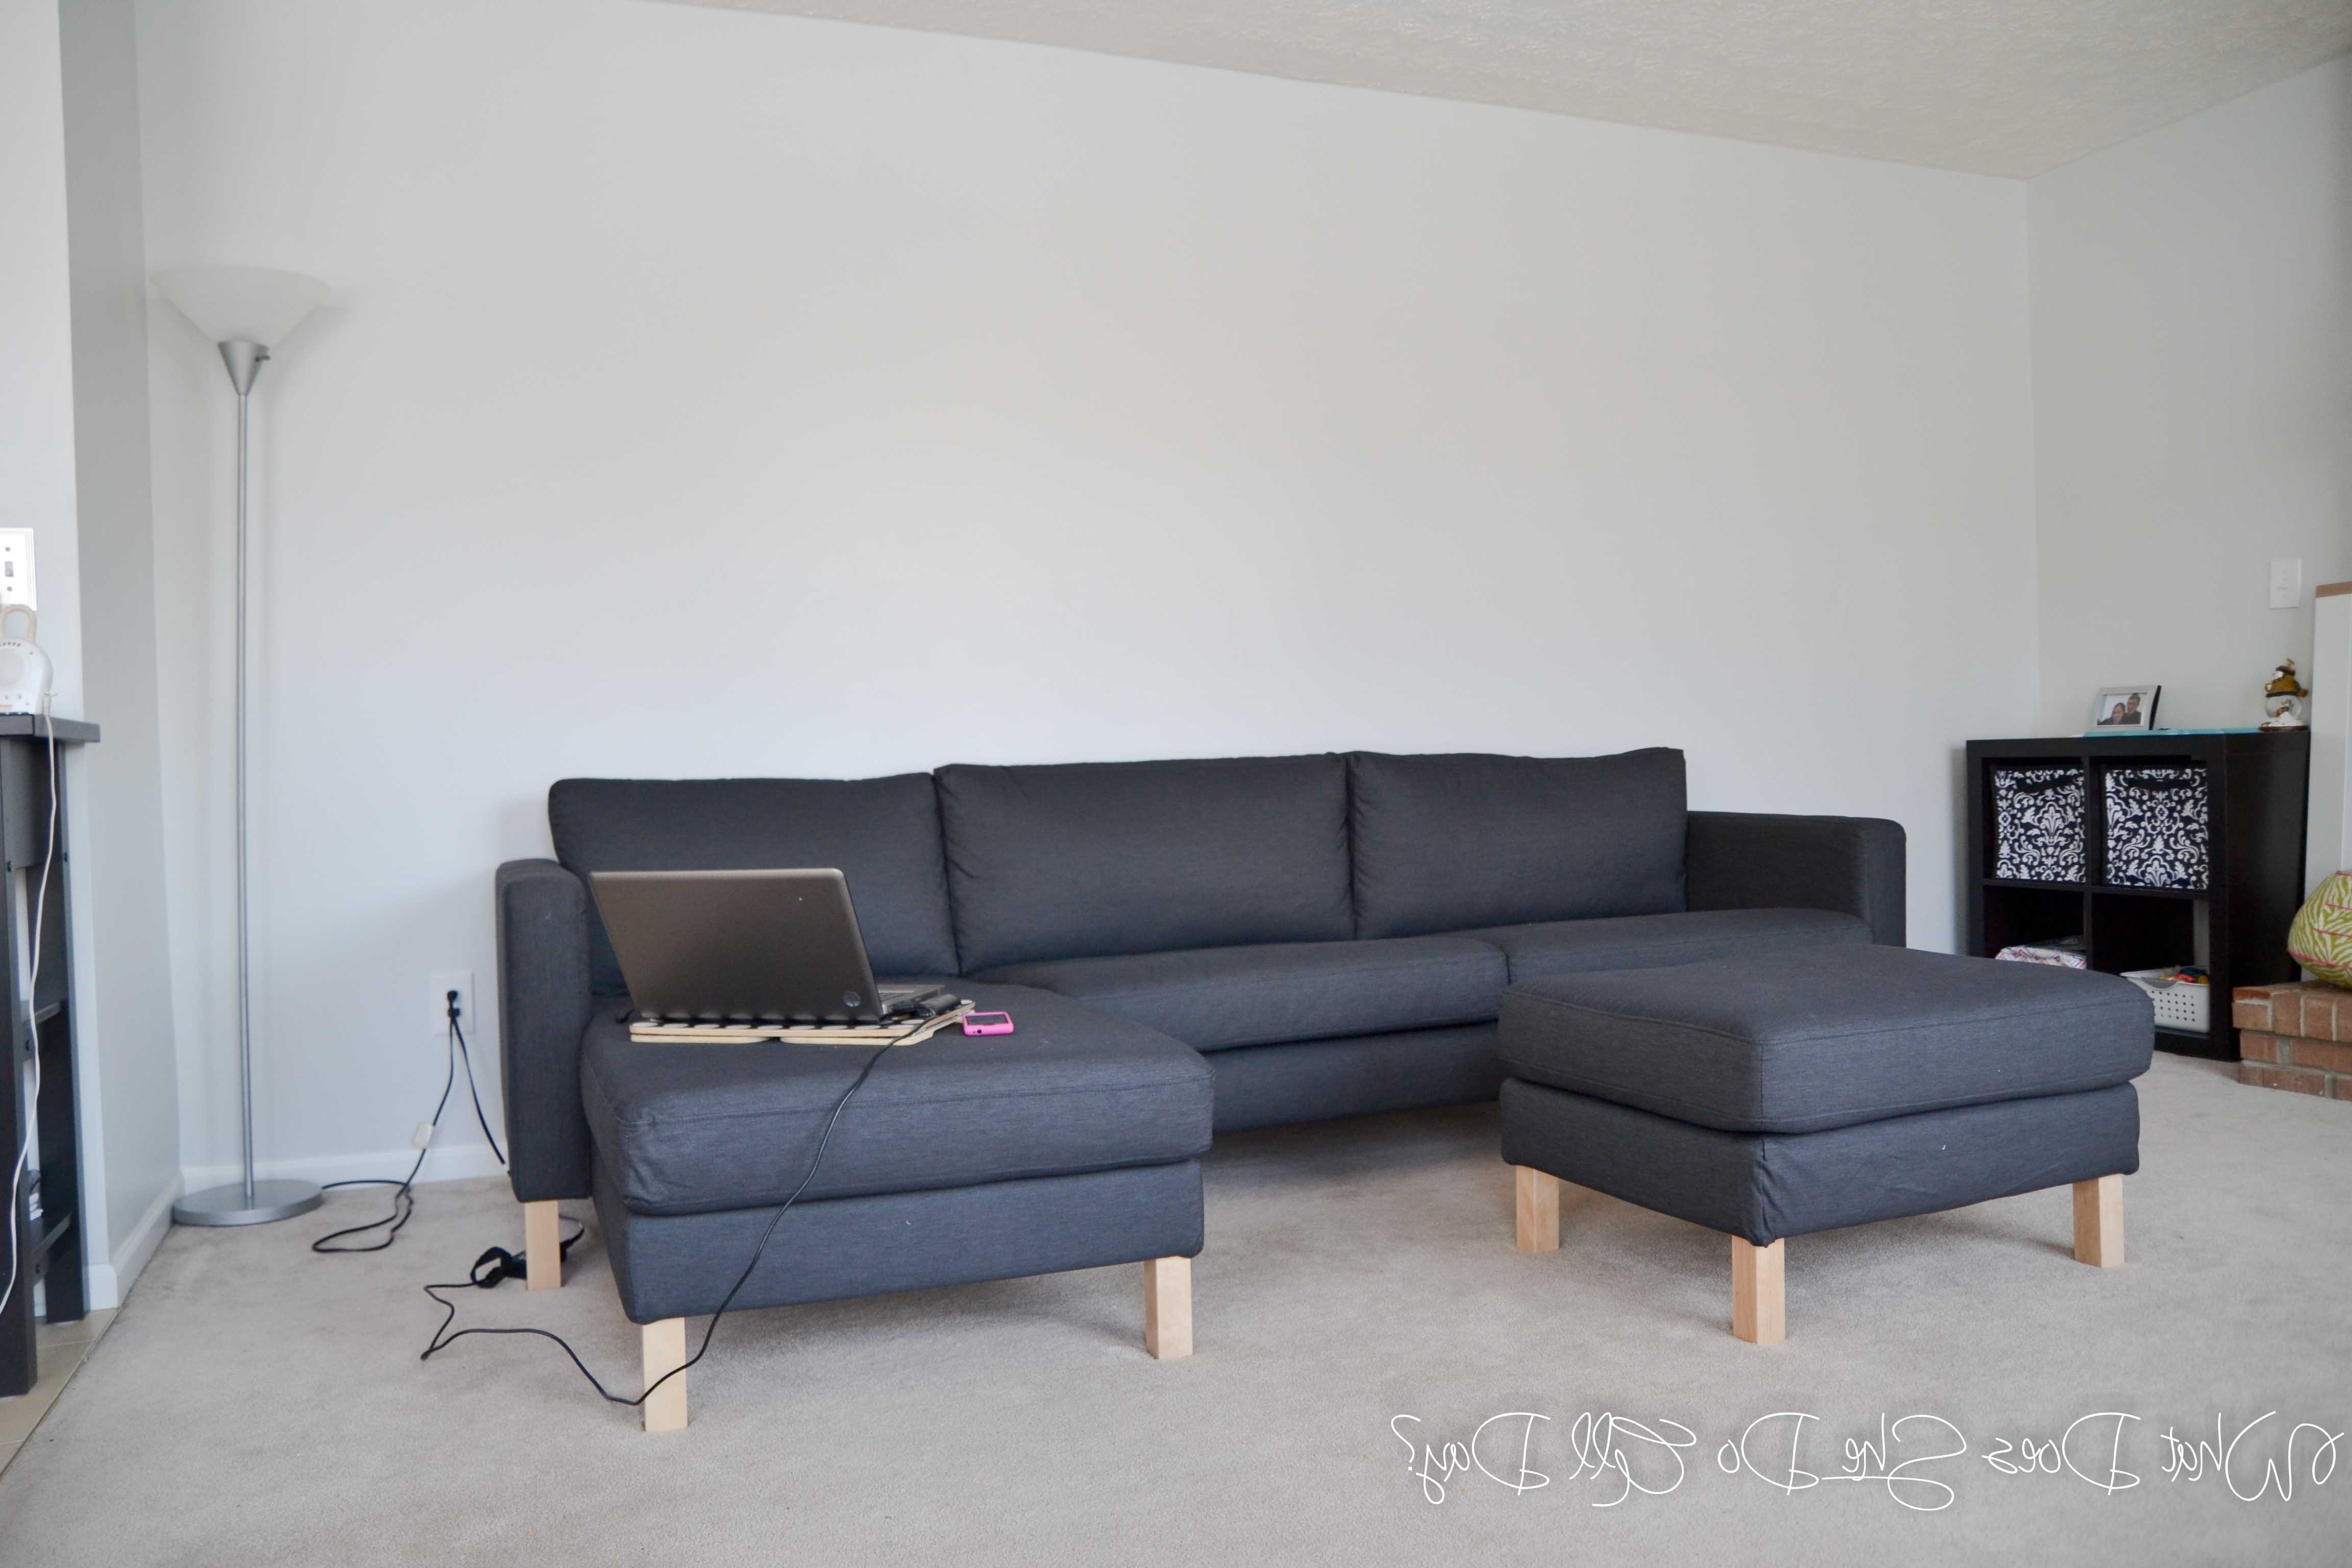 2018 Karlstad Chaise Covers Within Furniture: Ikea Karlstad Sofa Ikea Kivik Chair Discontinued (View 1 of 15)